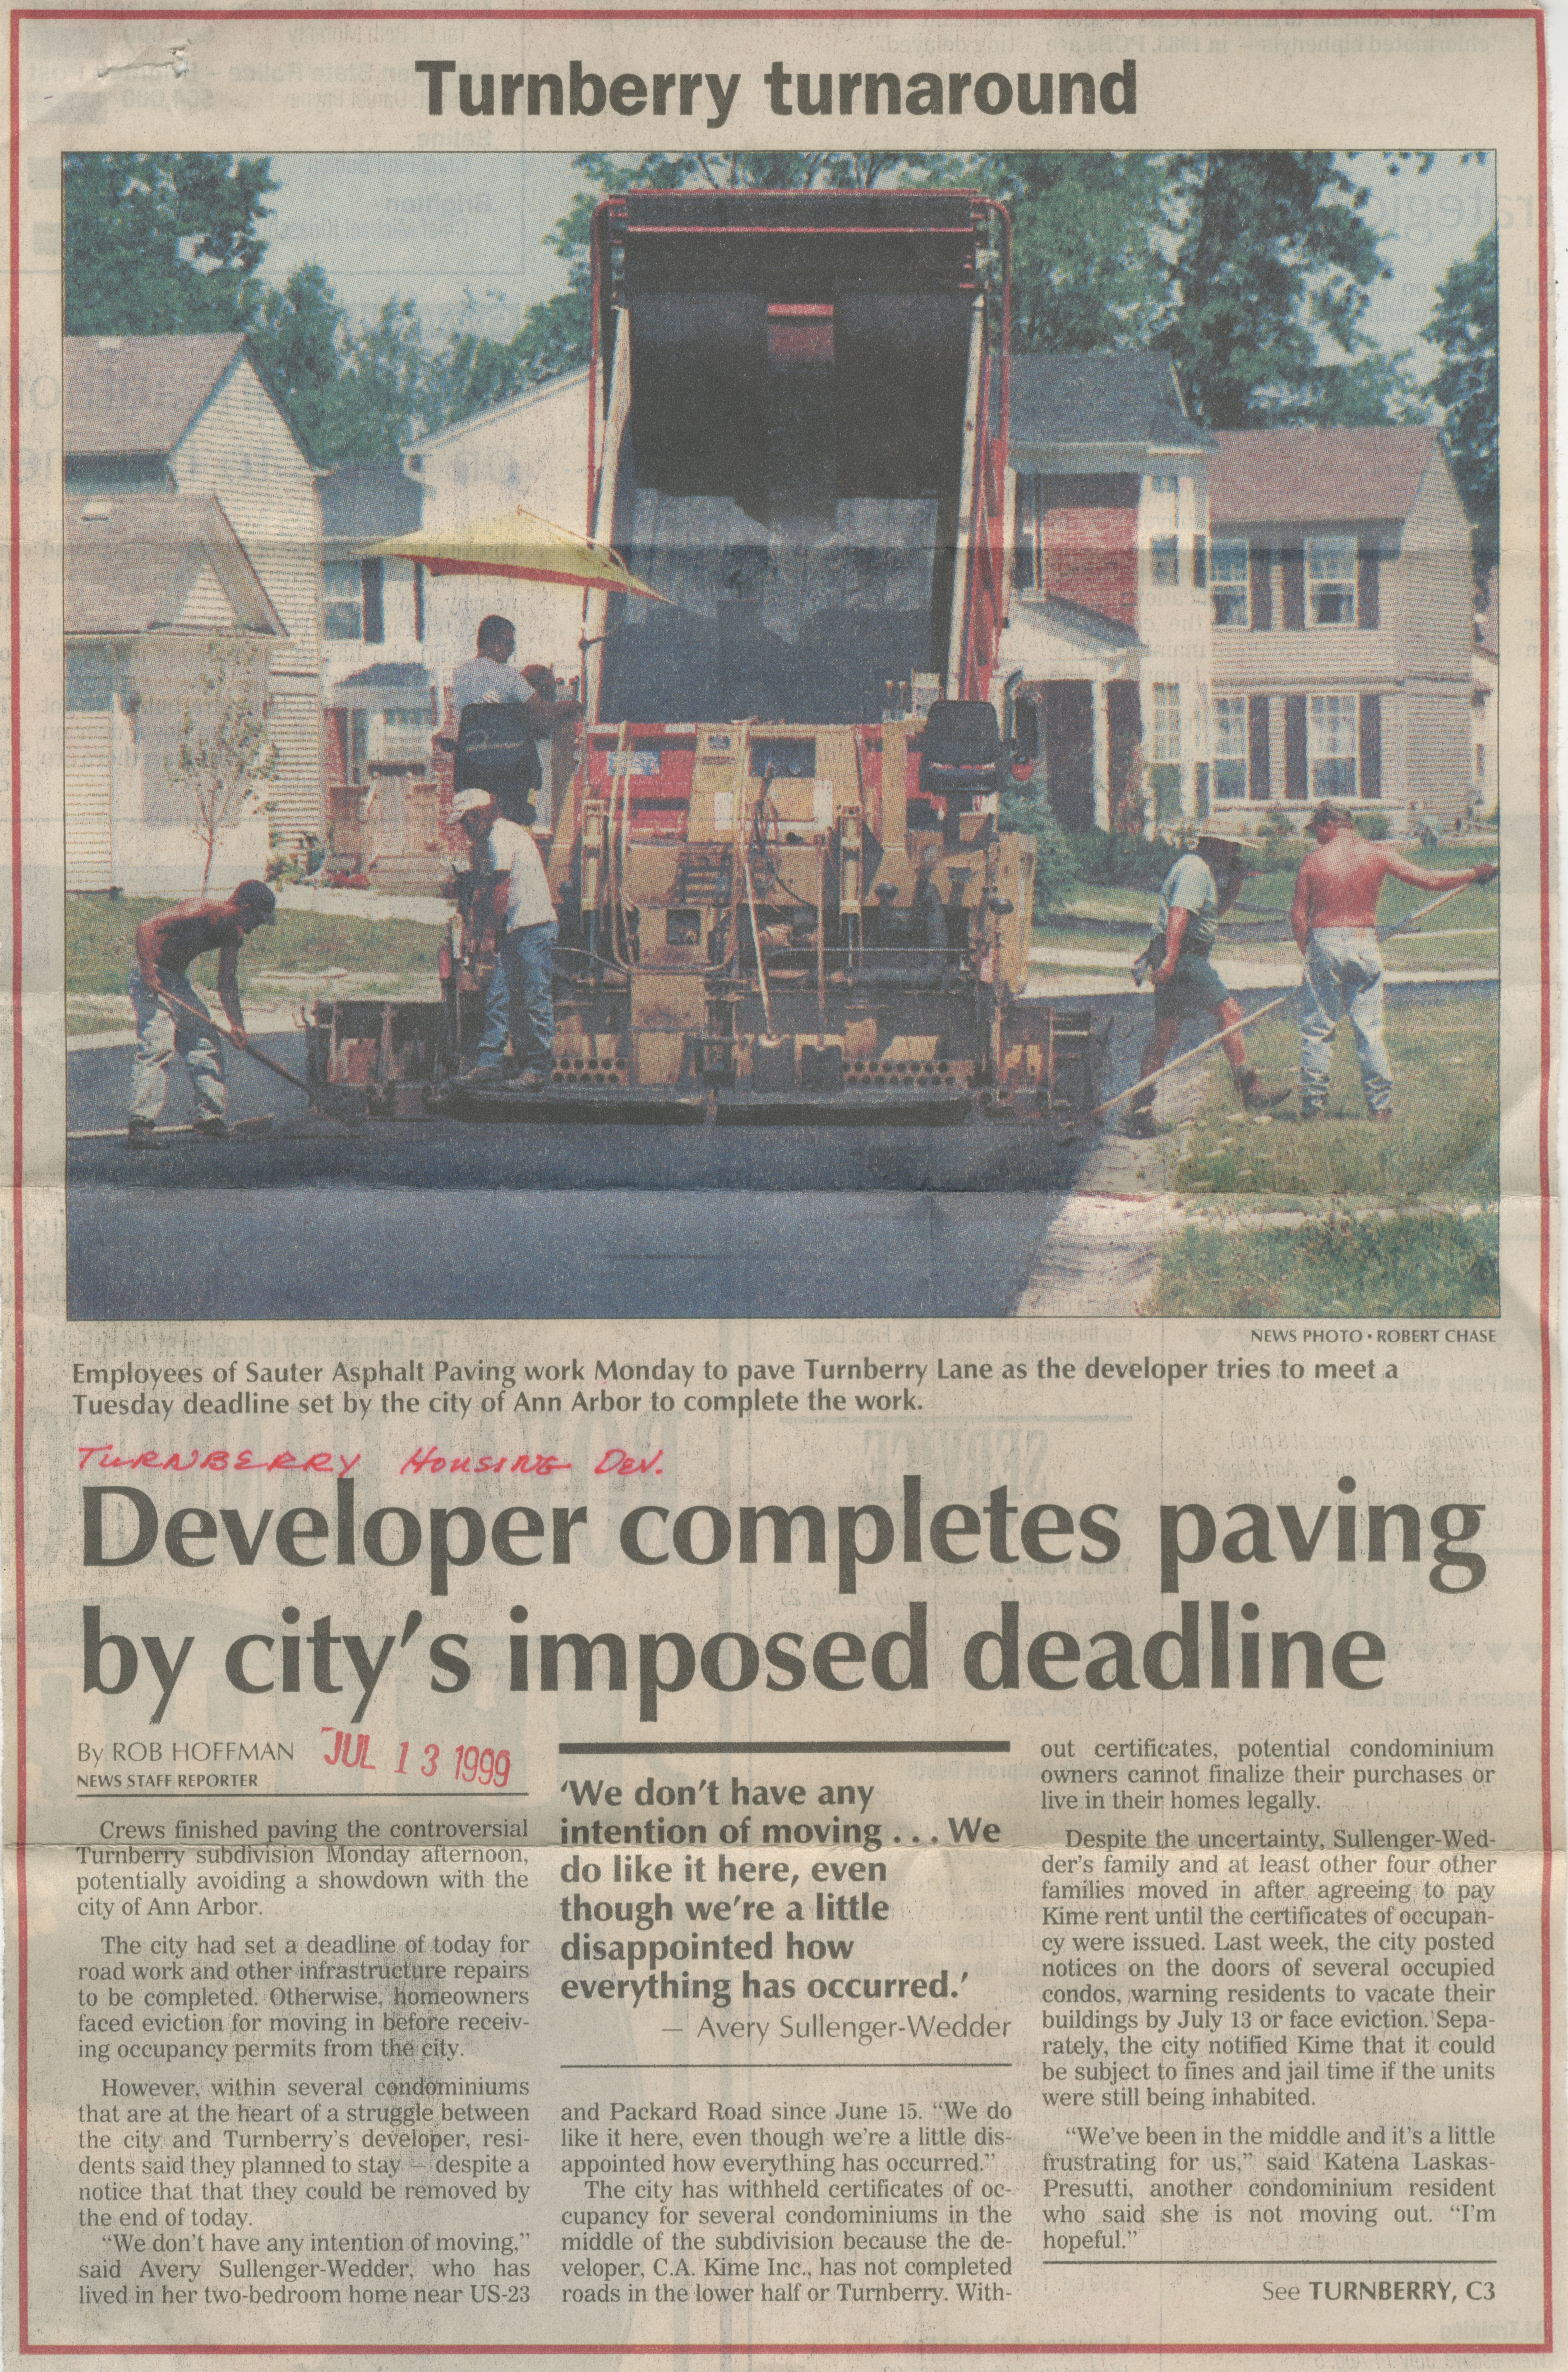 Developer completes paving by city's imposed deadline image